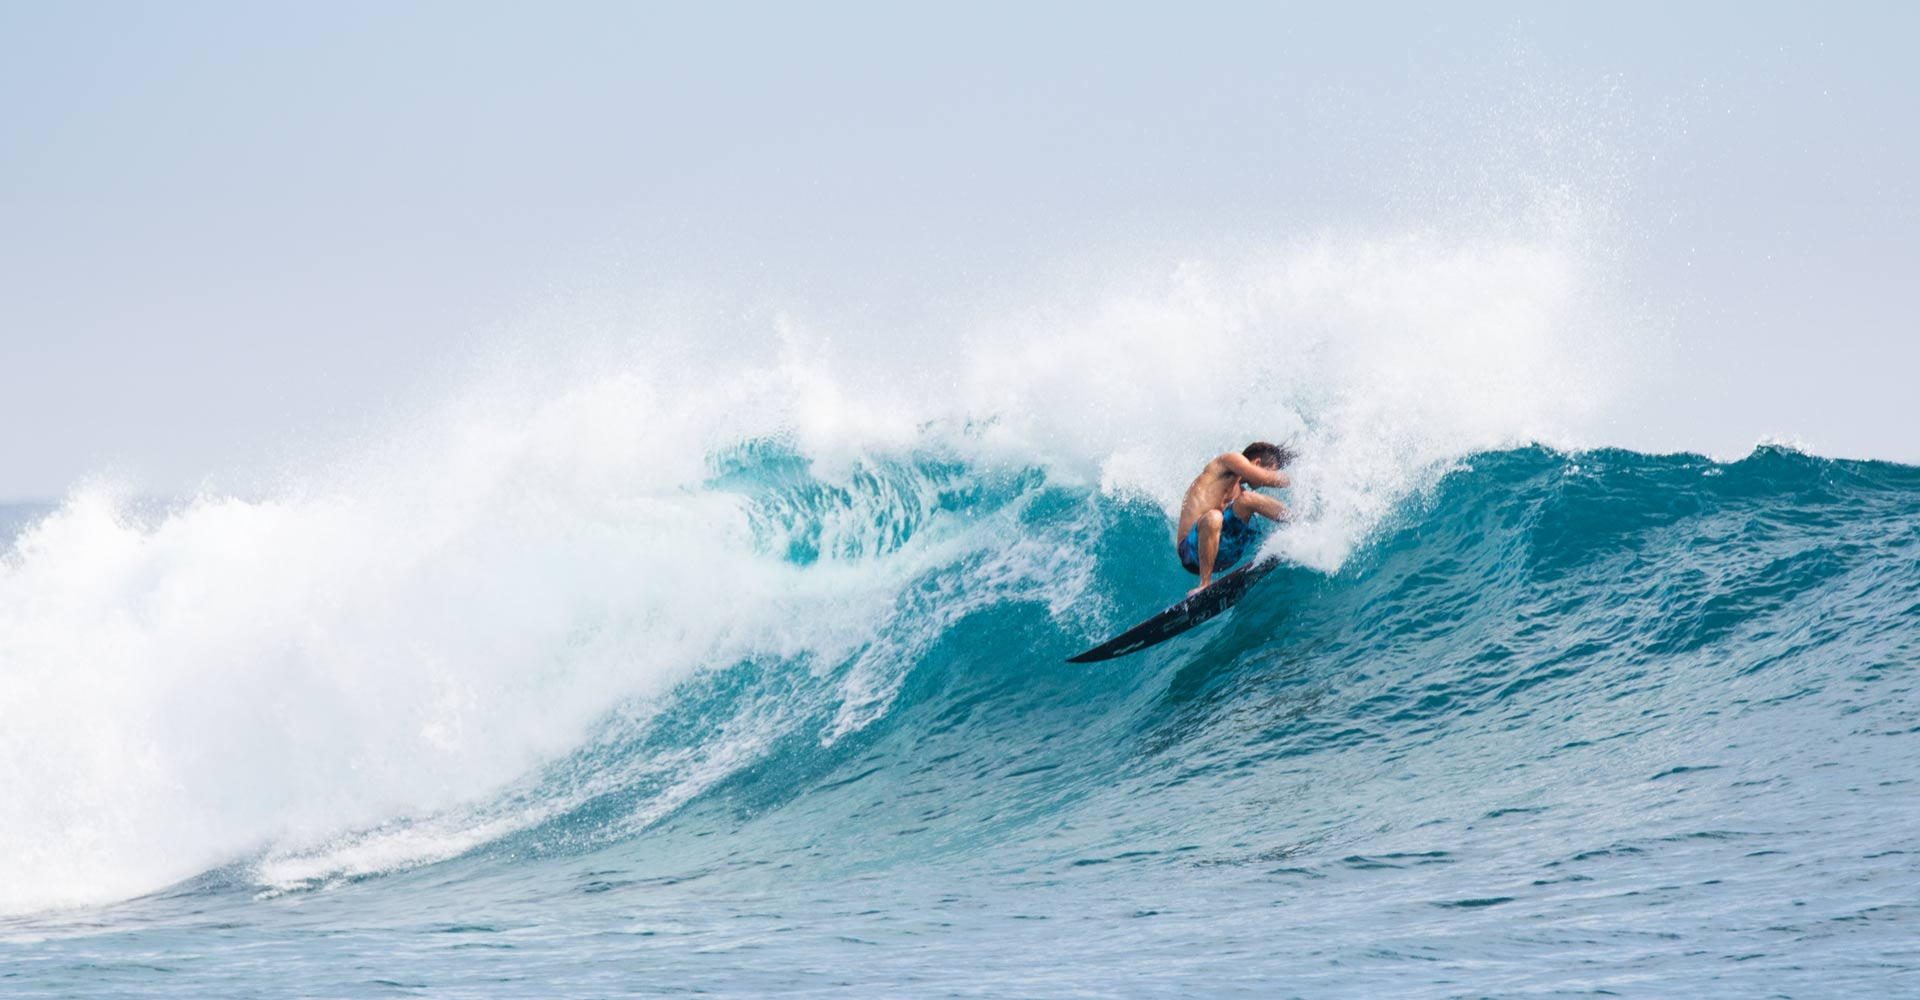 Jackson Coffey Surfing in front of Niyama Surf Resort